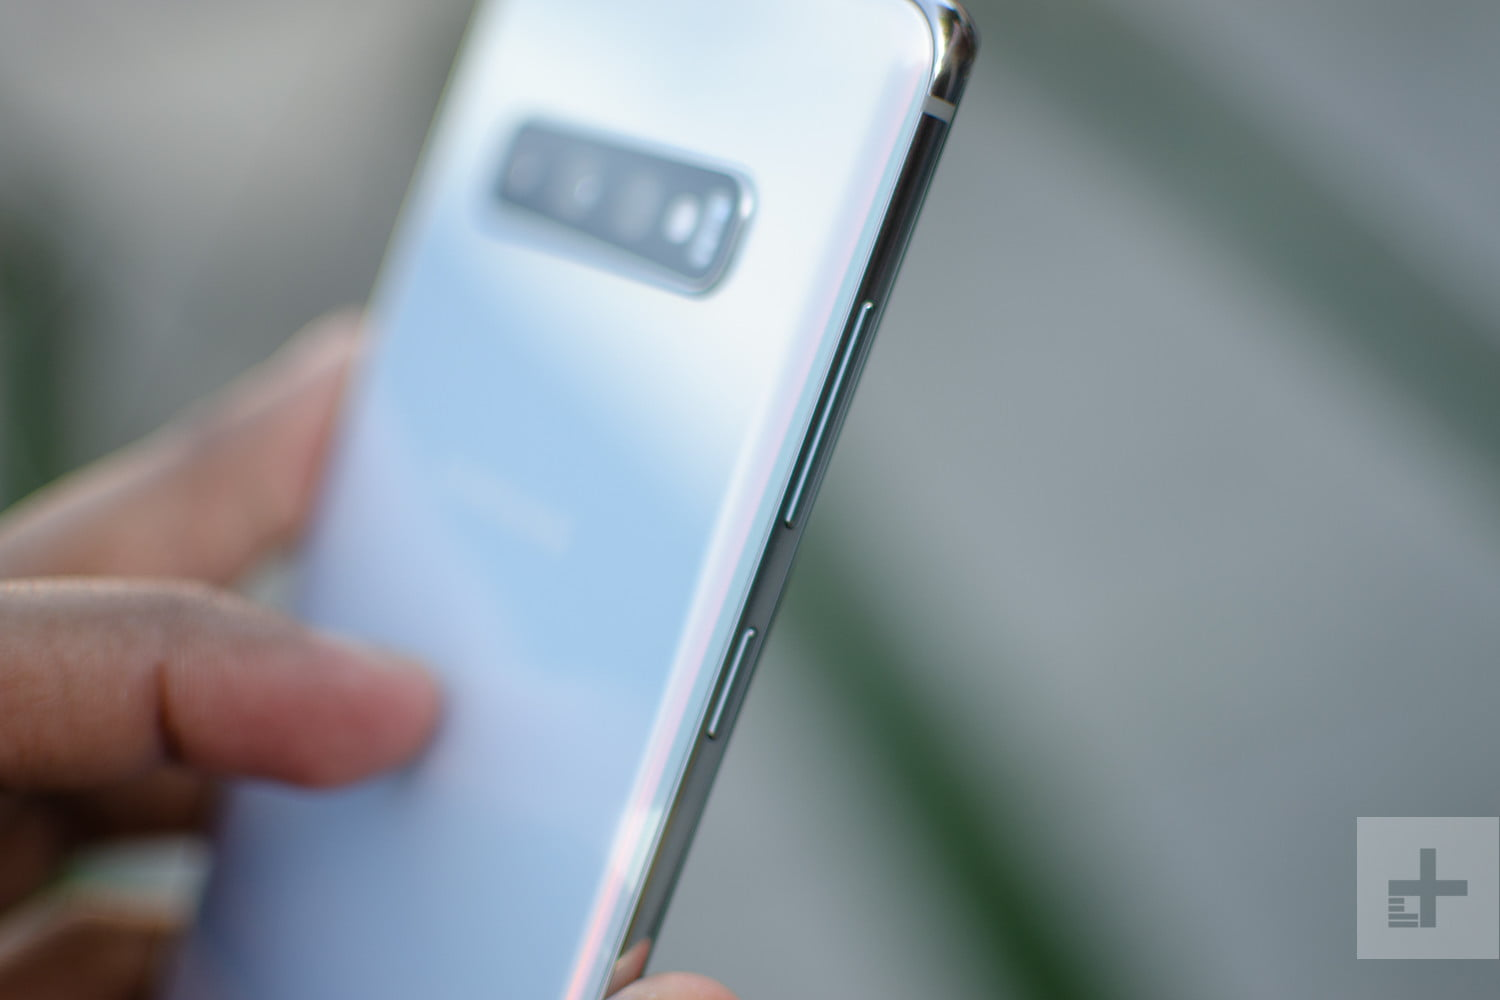 How to Remap the Bixby Key on Samsung's Galaxy S10, S9, and More